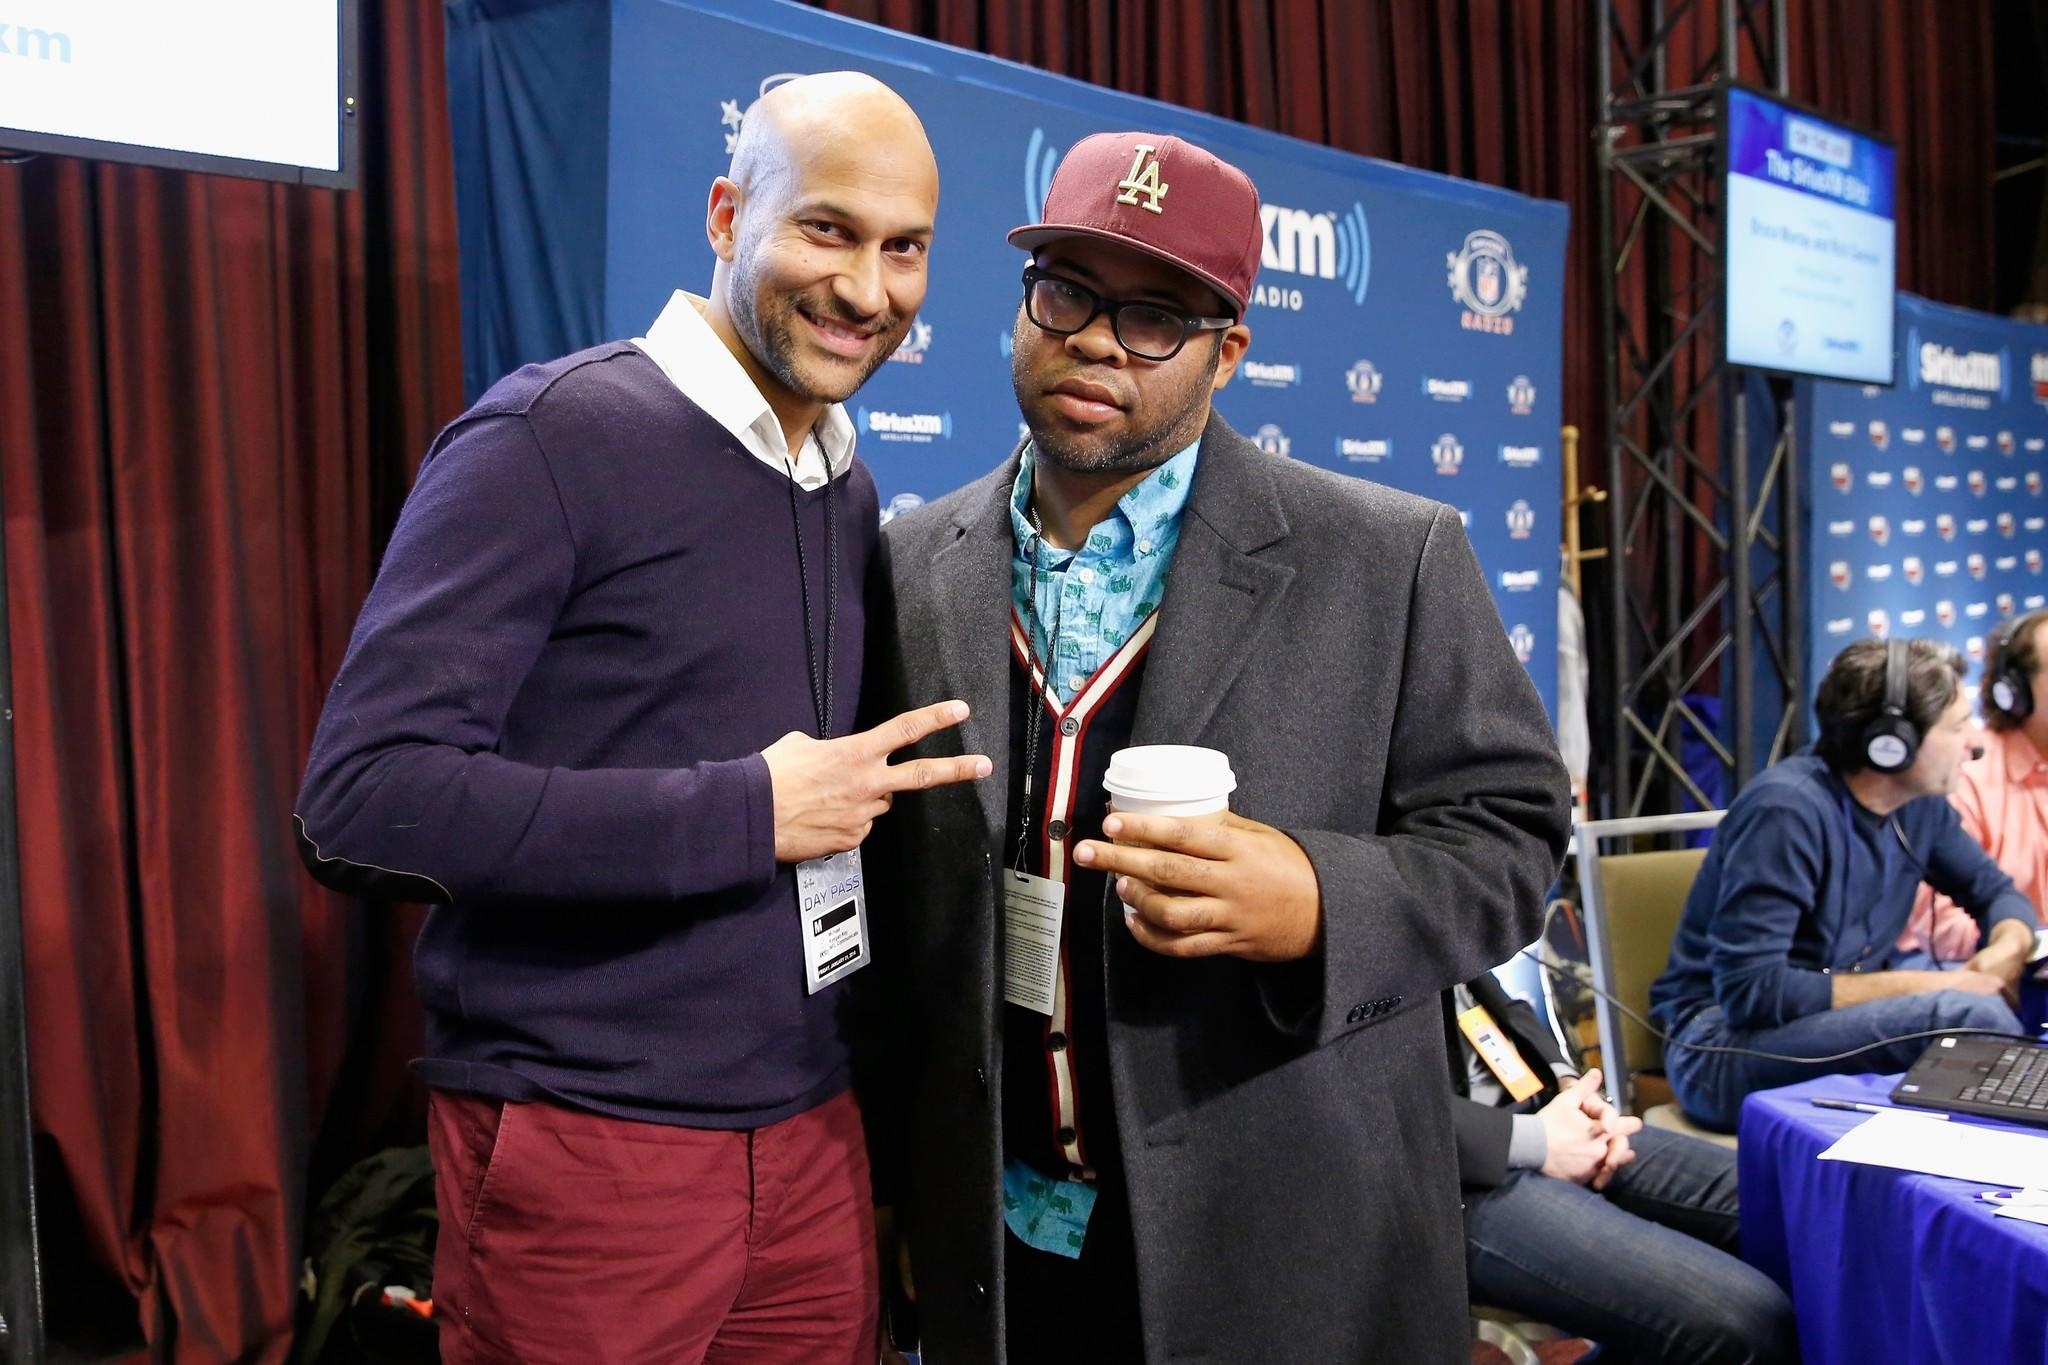 """Comedy Central has extended the fourth season of """"Key & Peele"""" to 22 episodes plus two """"best of"""" installments and given its creators a development deal for an animated series. Above, Keegan-Michael Key, left, and Jordan Peele."""